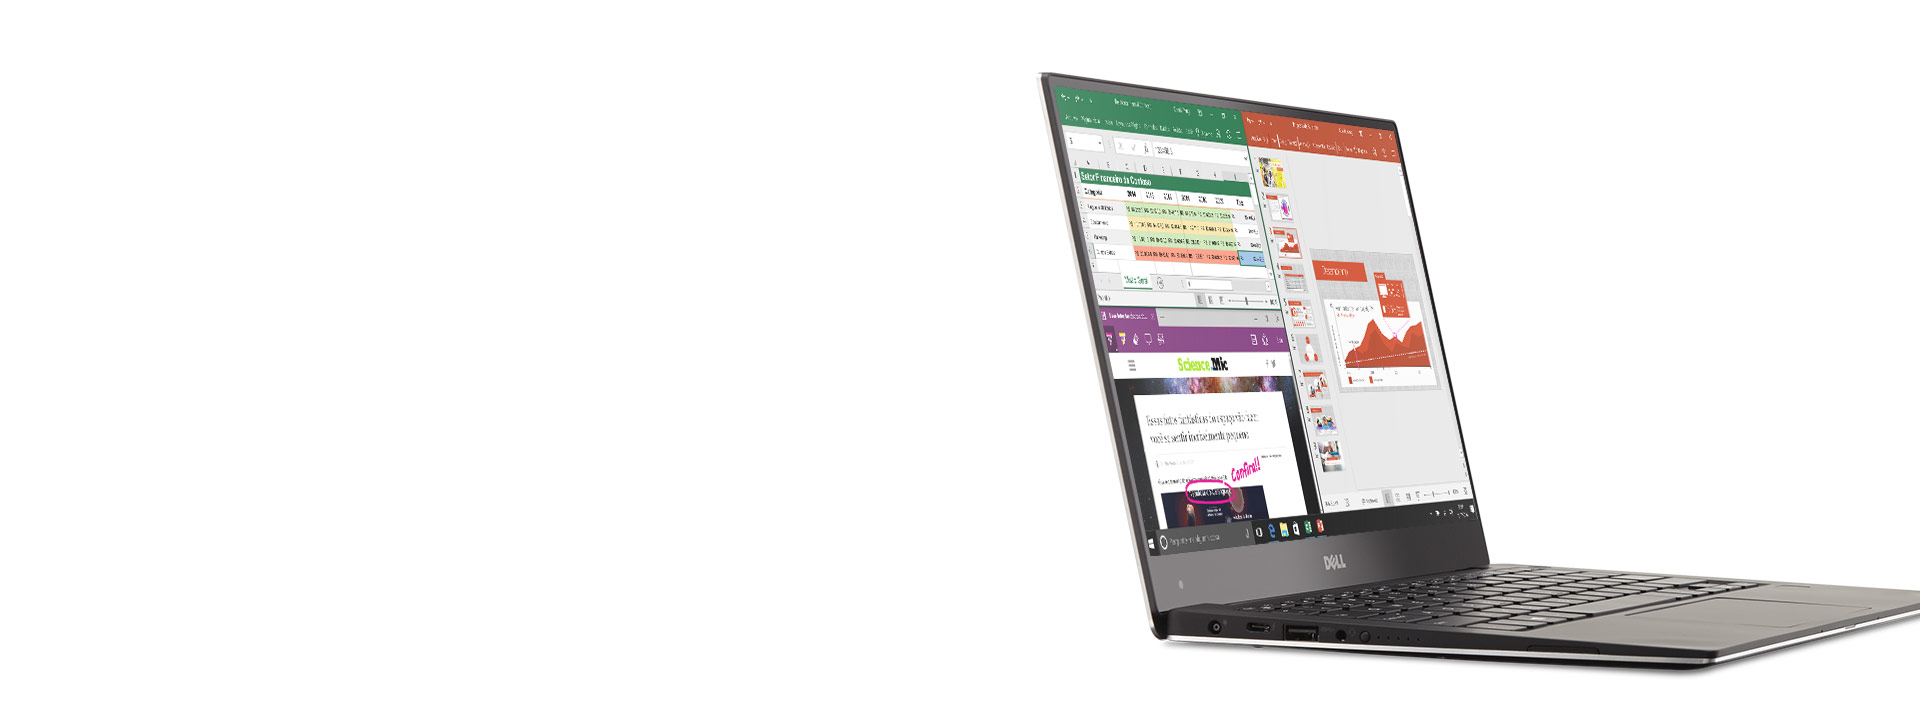 Surface Pro 4 com Office na tela